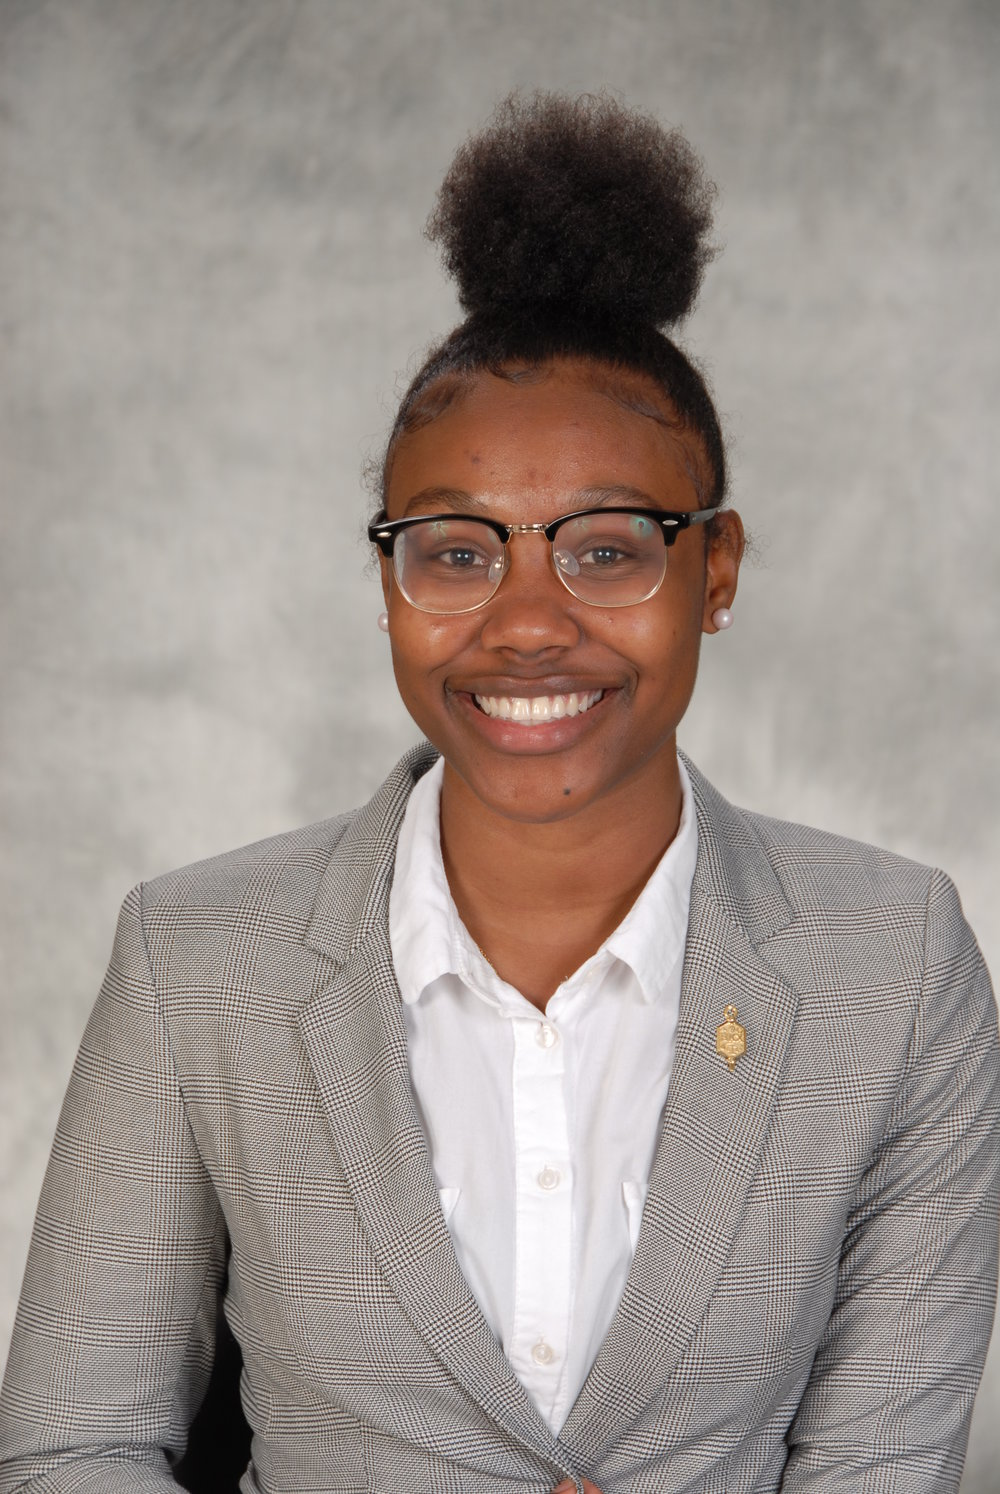 Alexis James - V of Fundraising